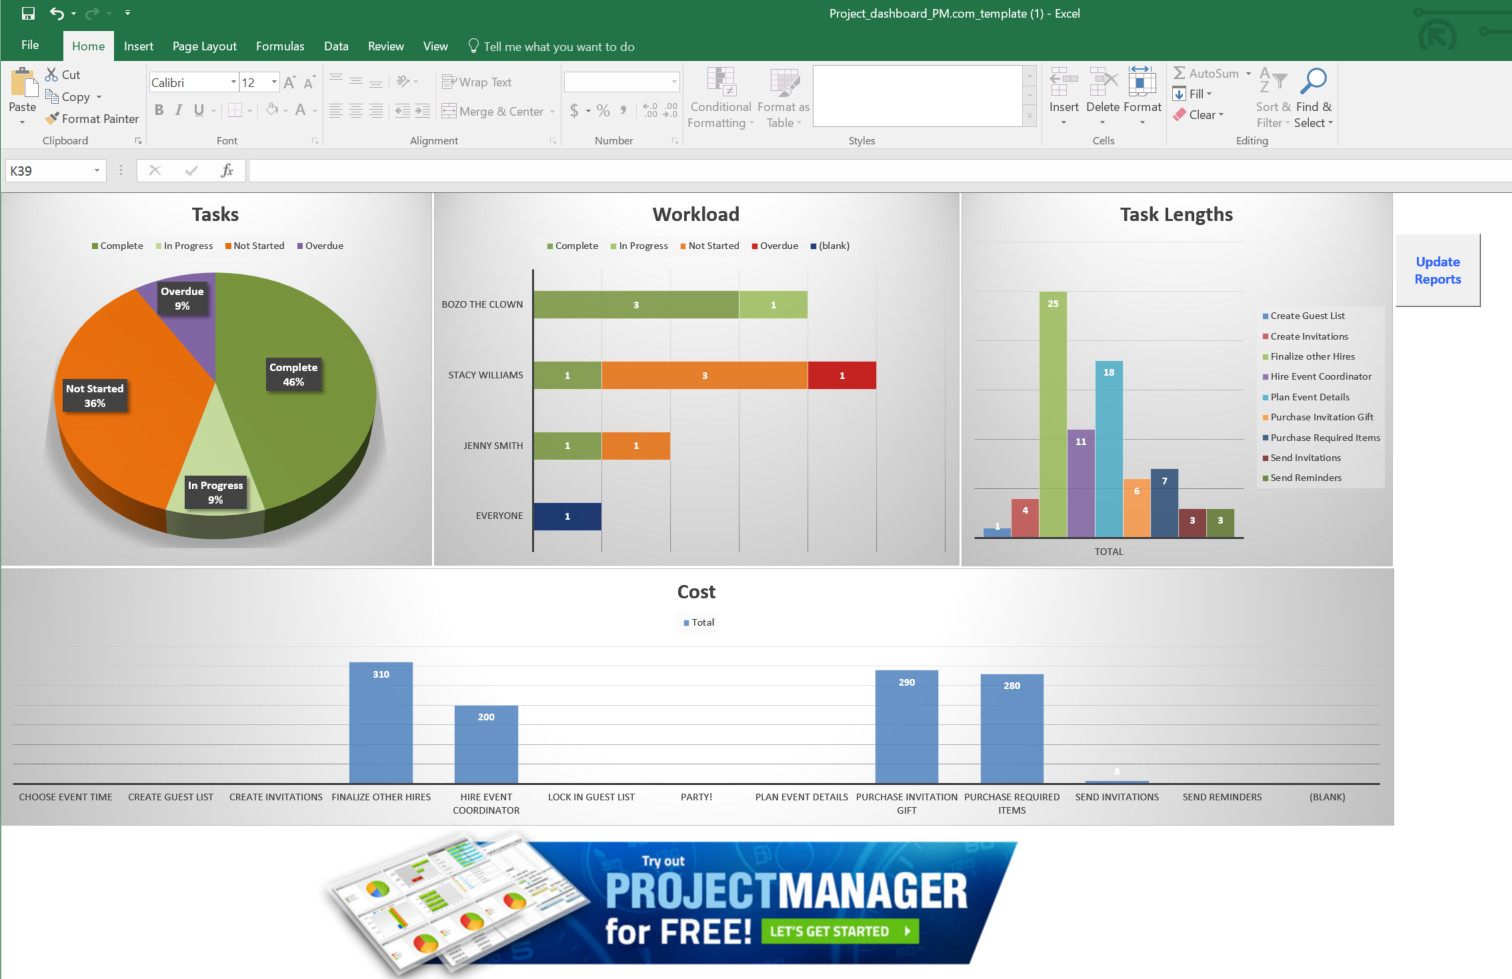 Guide To Excel Project Management - Projectmanager In Project Management Reporting Templates